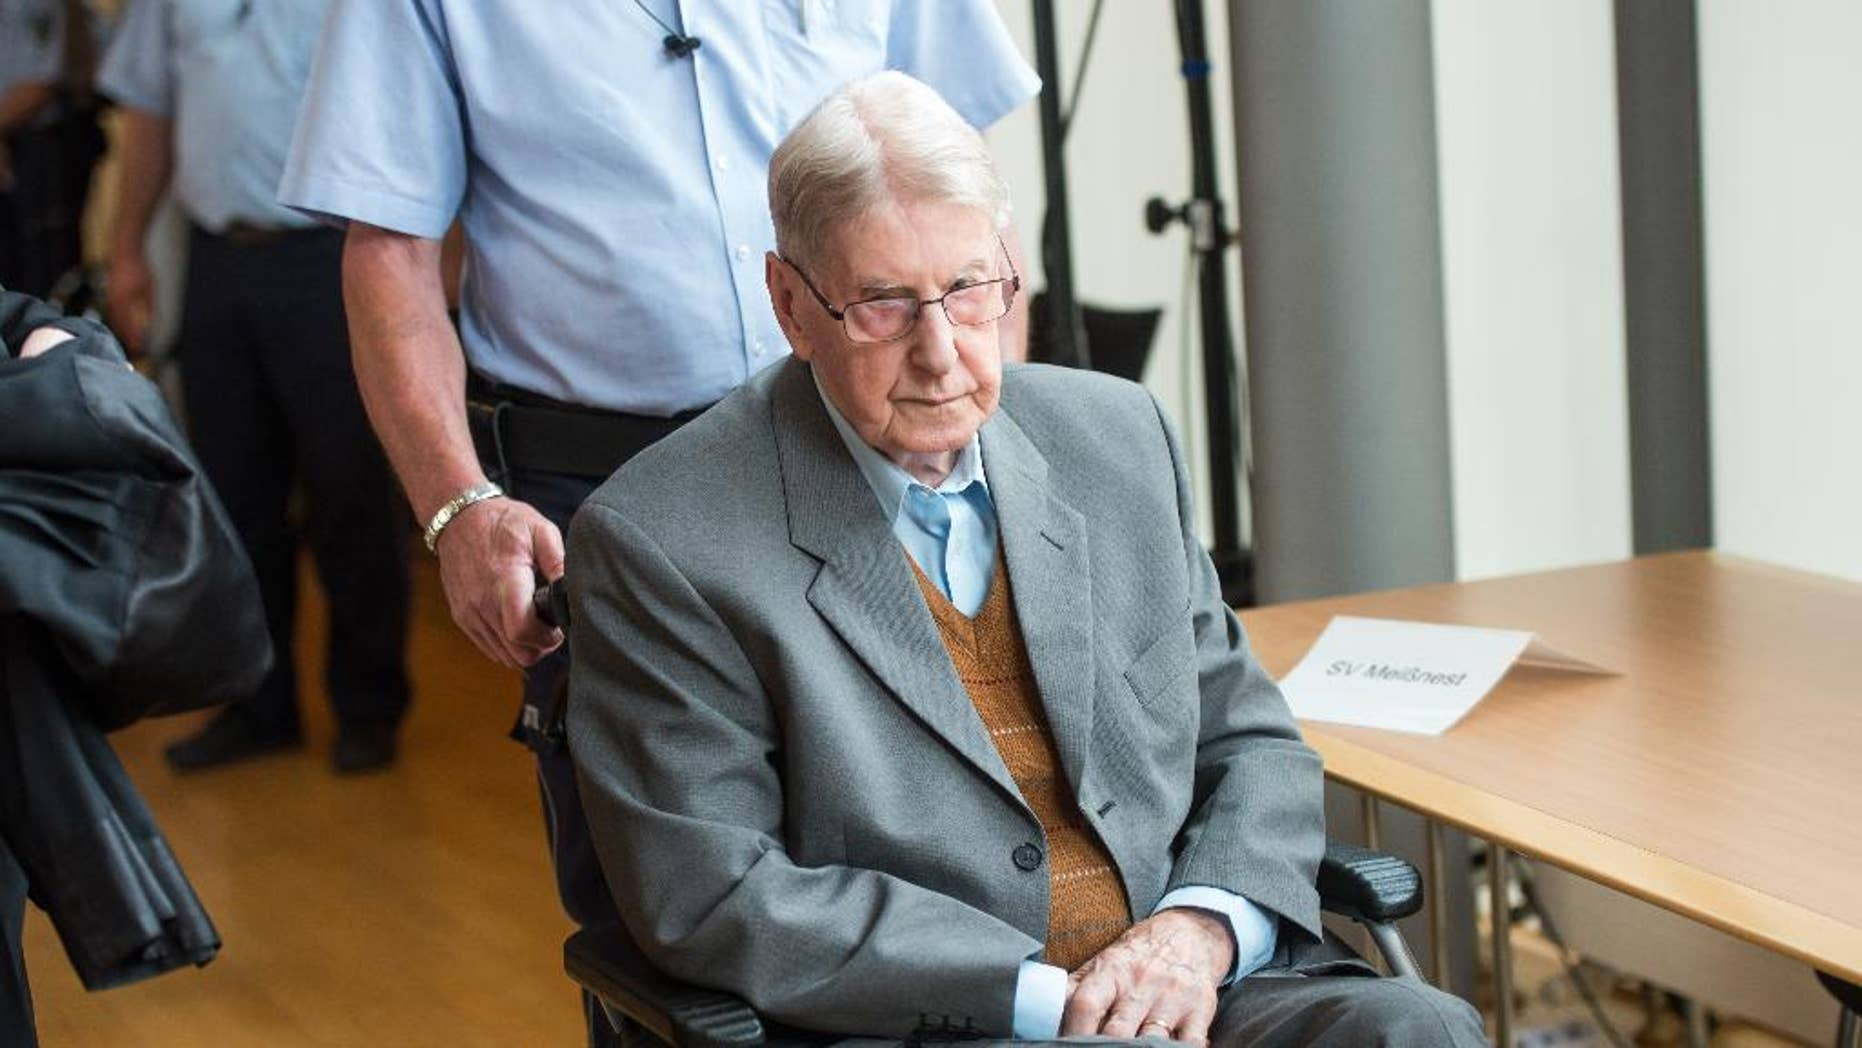 June 11, 2016: A former SS guard at the Auschwitz death camp, Reinhold Hanning, 94, arrives at a courtroom in Detmold, Germany.